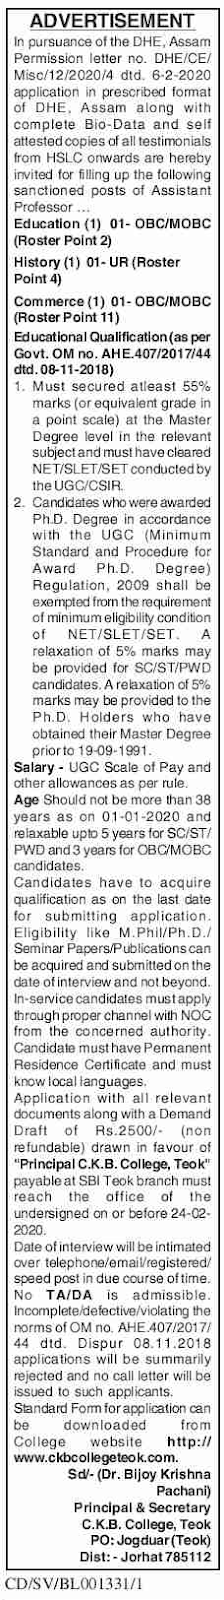 CKB College Teok Recruitment 2020